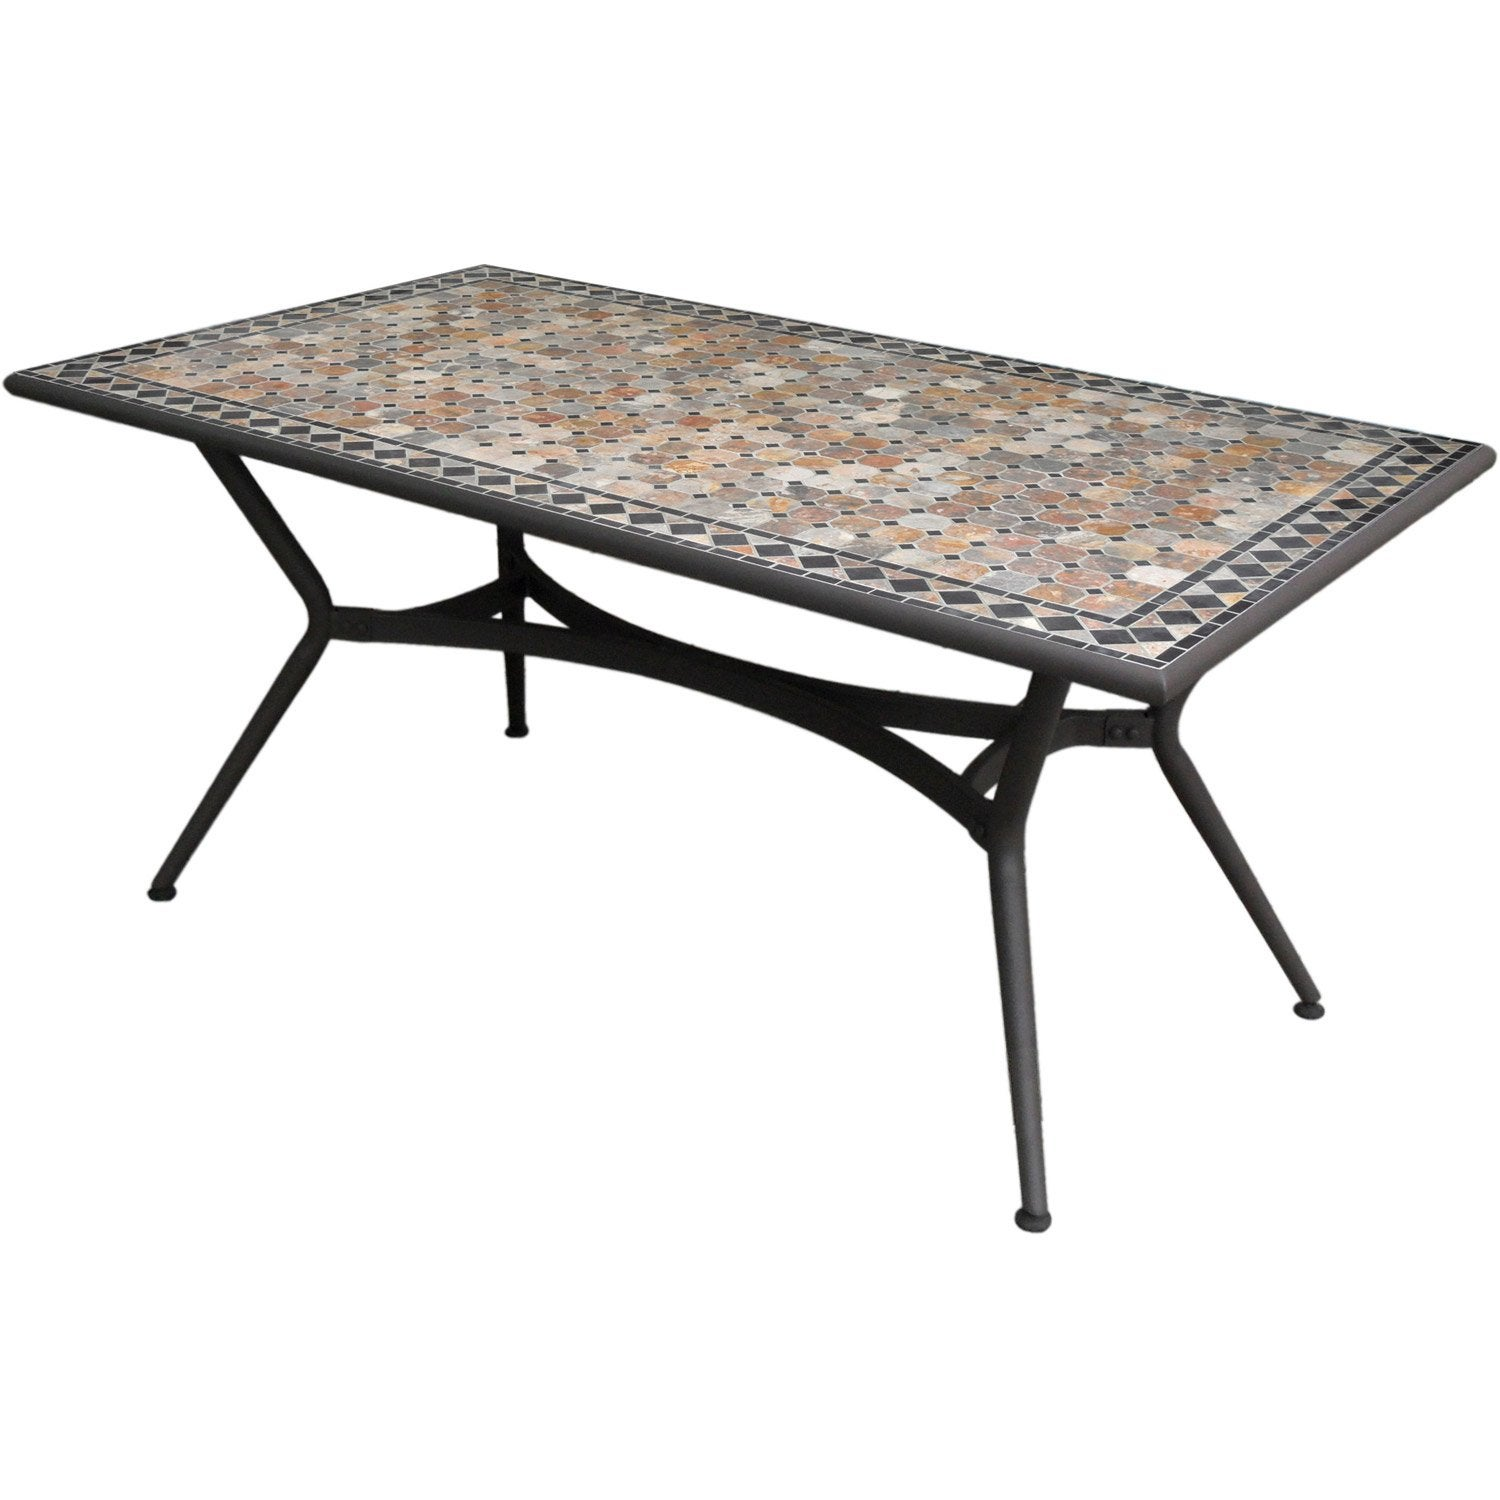 Table de jardin Marocco rectangulaire anthracite, 6 personnes ...